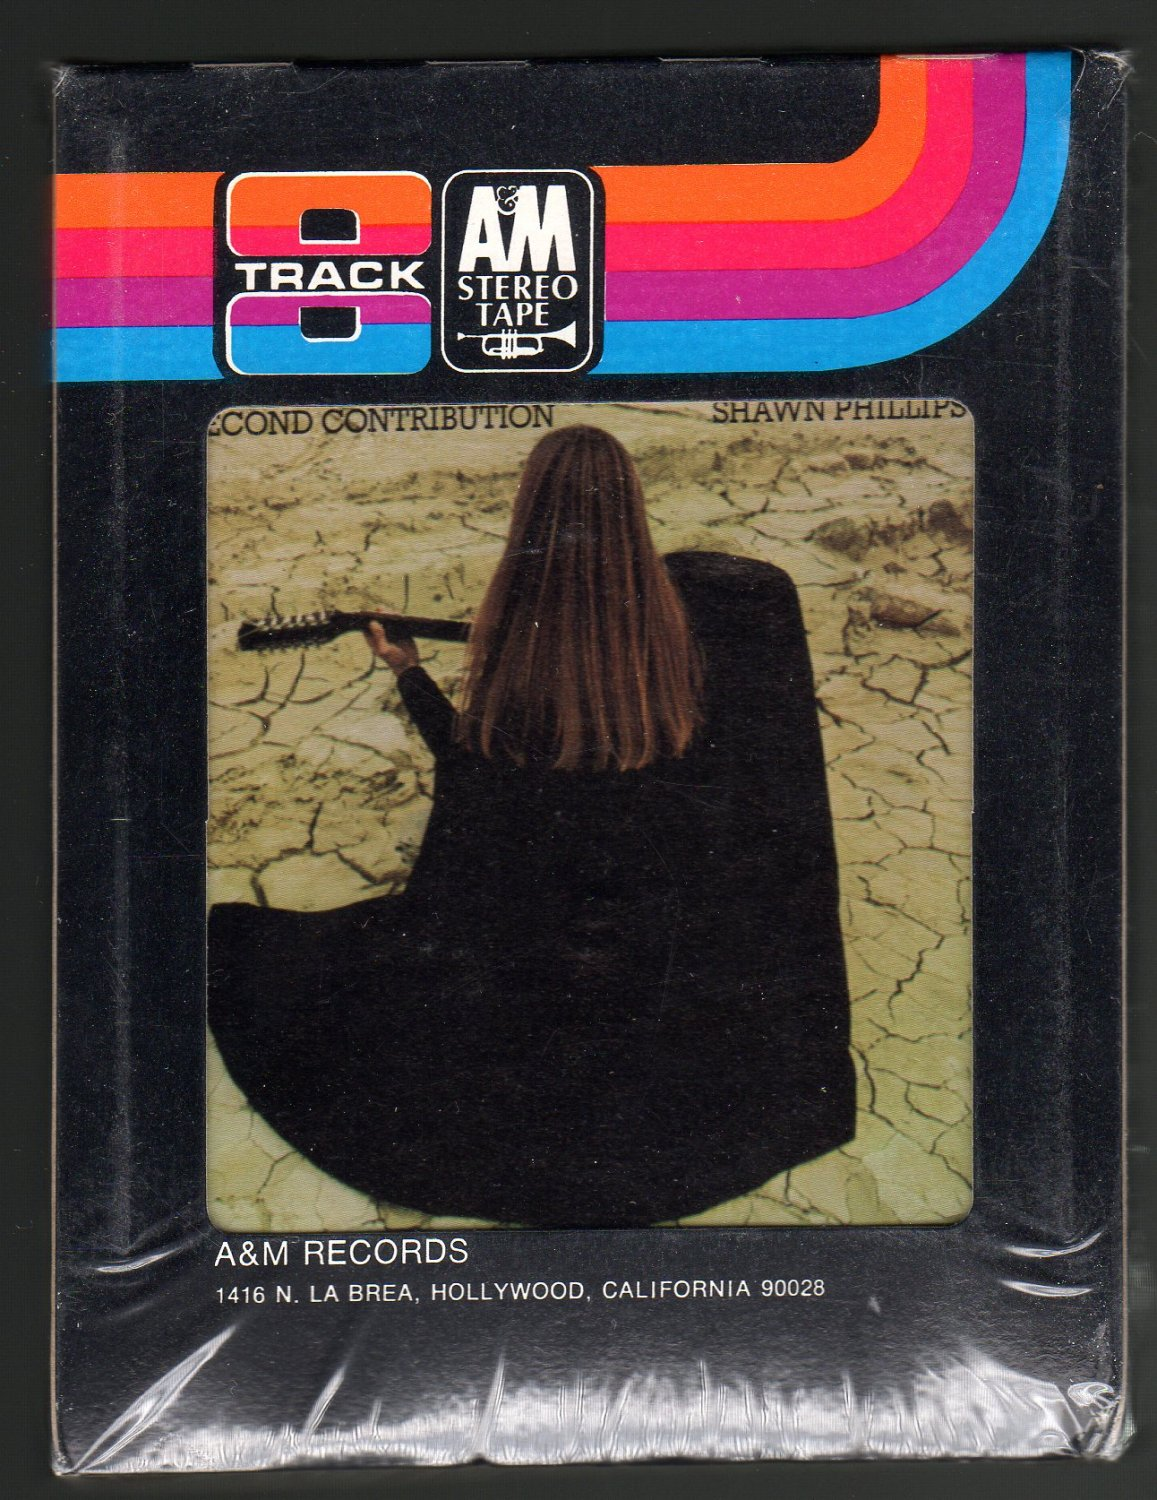 Shawn Phillips - Second Contribution 1970 A&M Sealed A23 8-TRACK TAPE